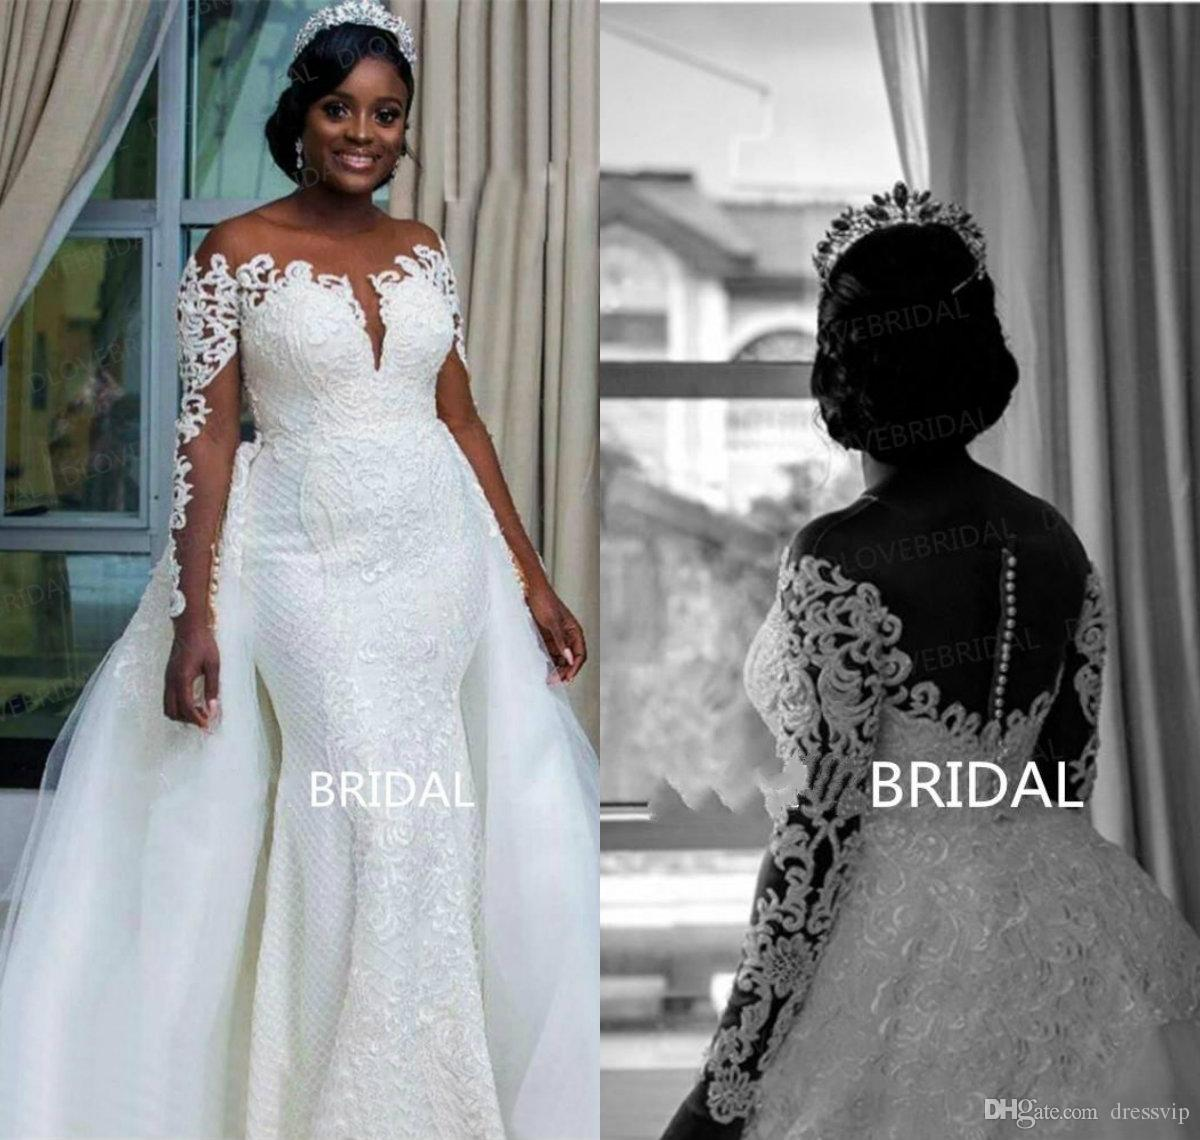 2019 New Plus Size Wedding Dresses Jewel Neck Lace Appliques Sweep